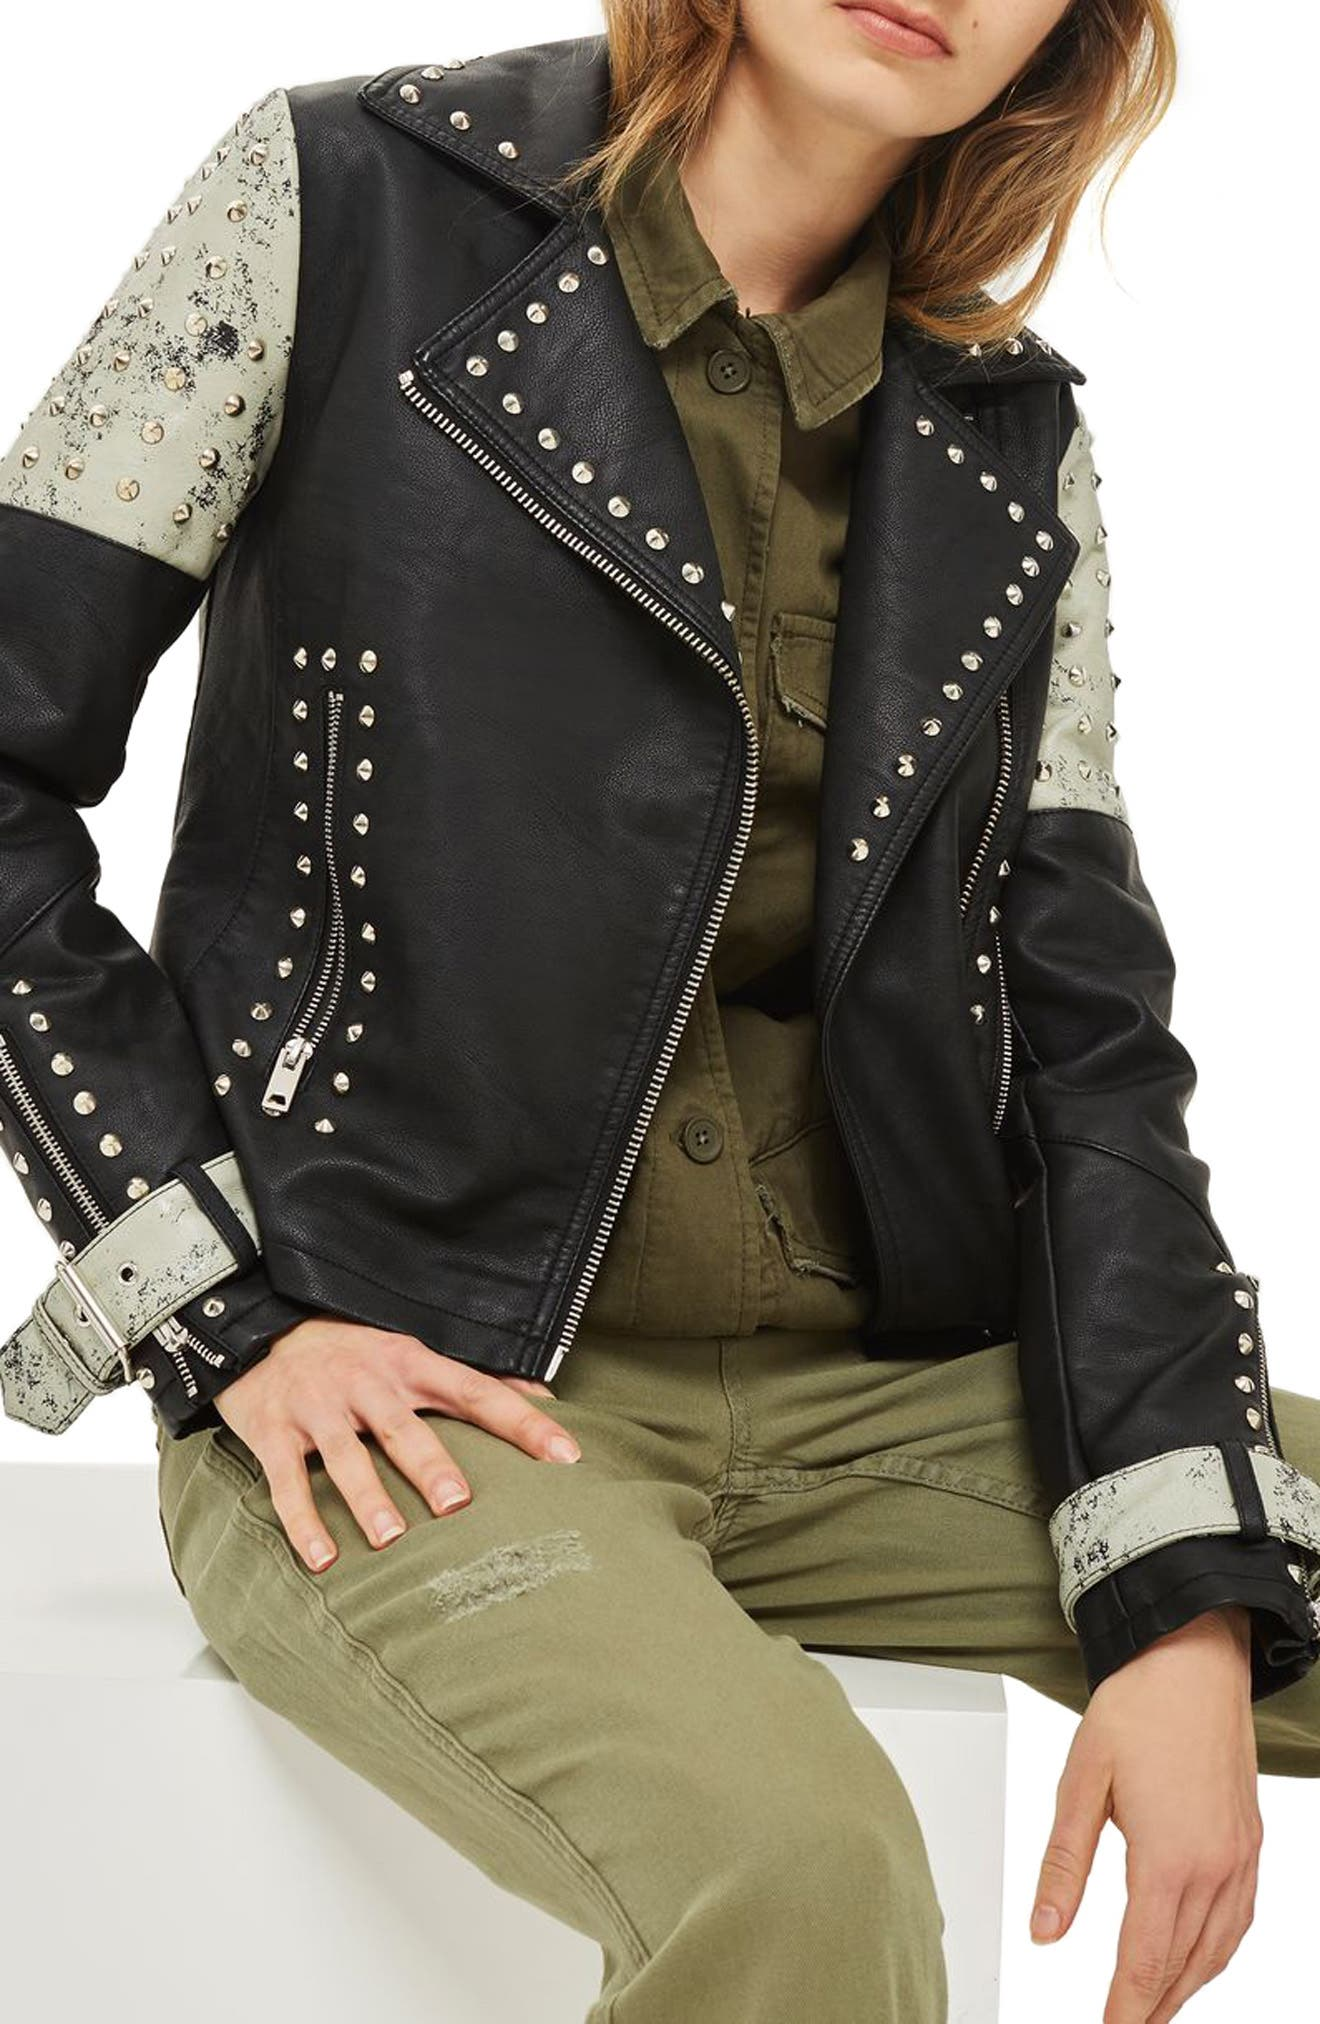 Maddox Painted & Studded Faux Leather Jacket,                         Main,                         color, 001